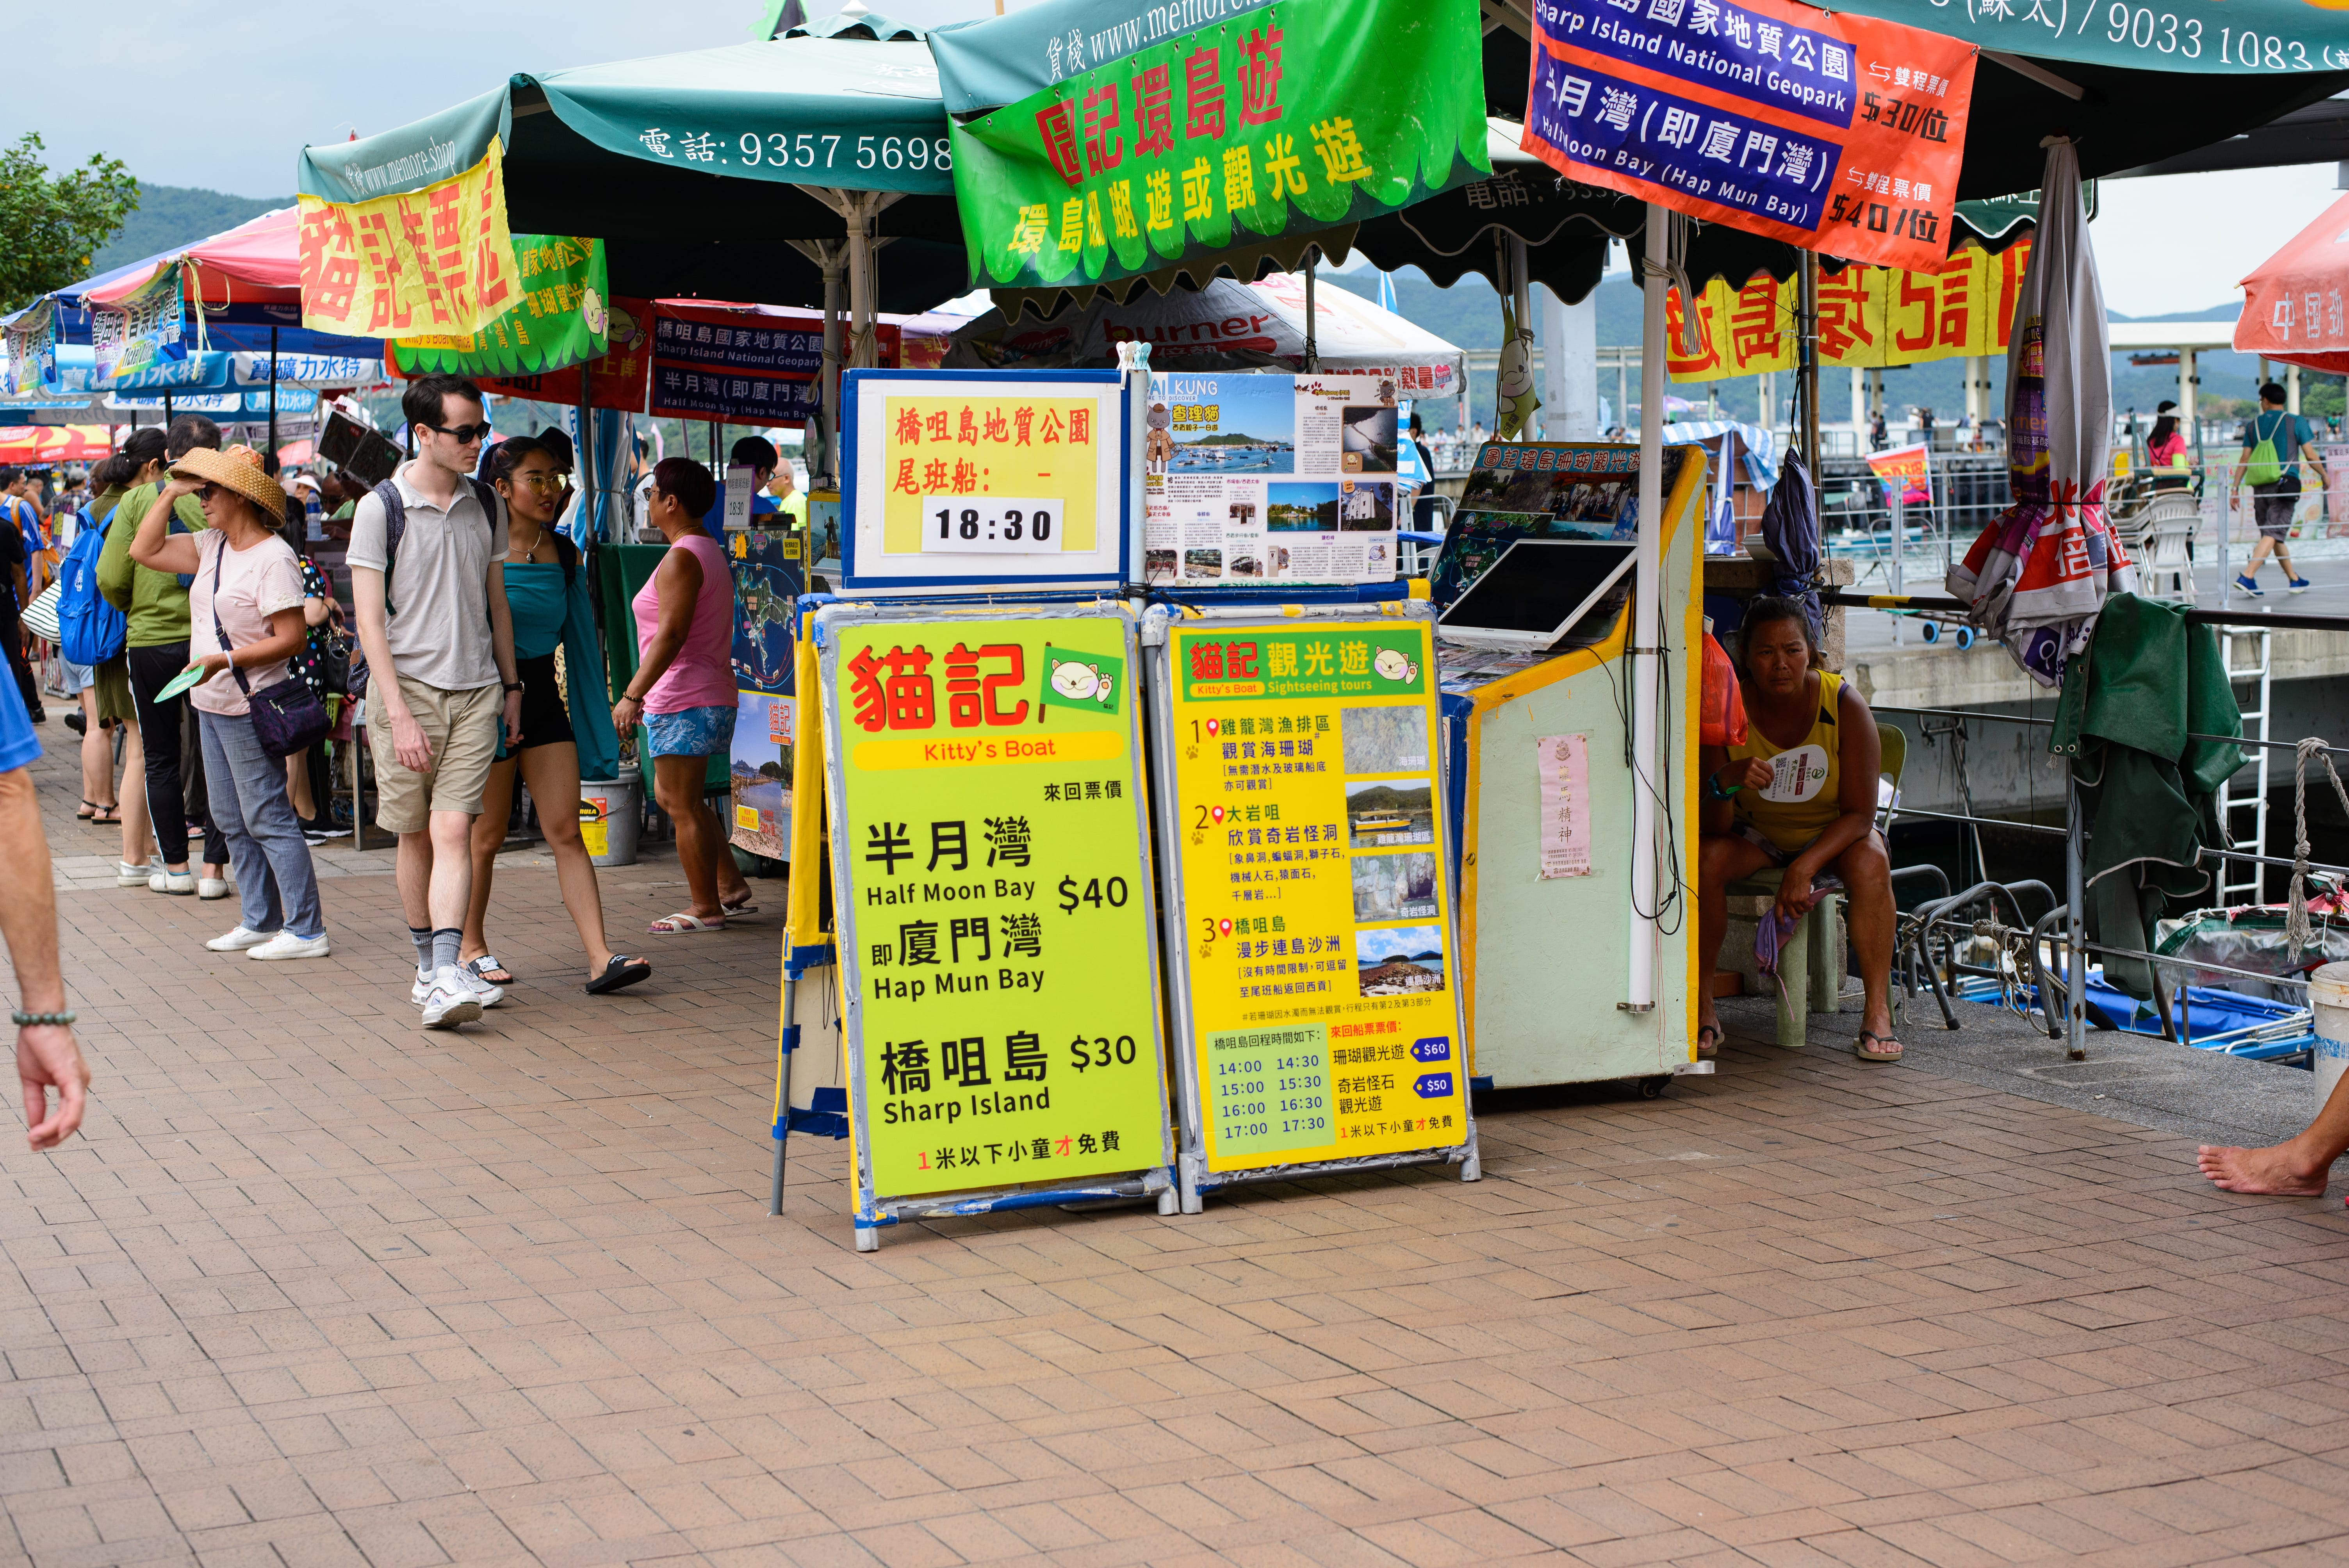 Boat tours to visit nearby islands in the Sai Kung Area